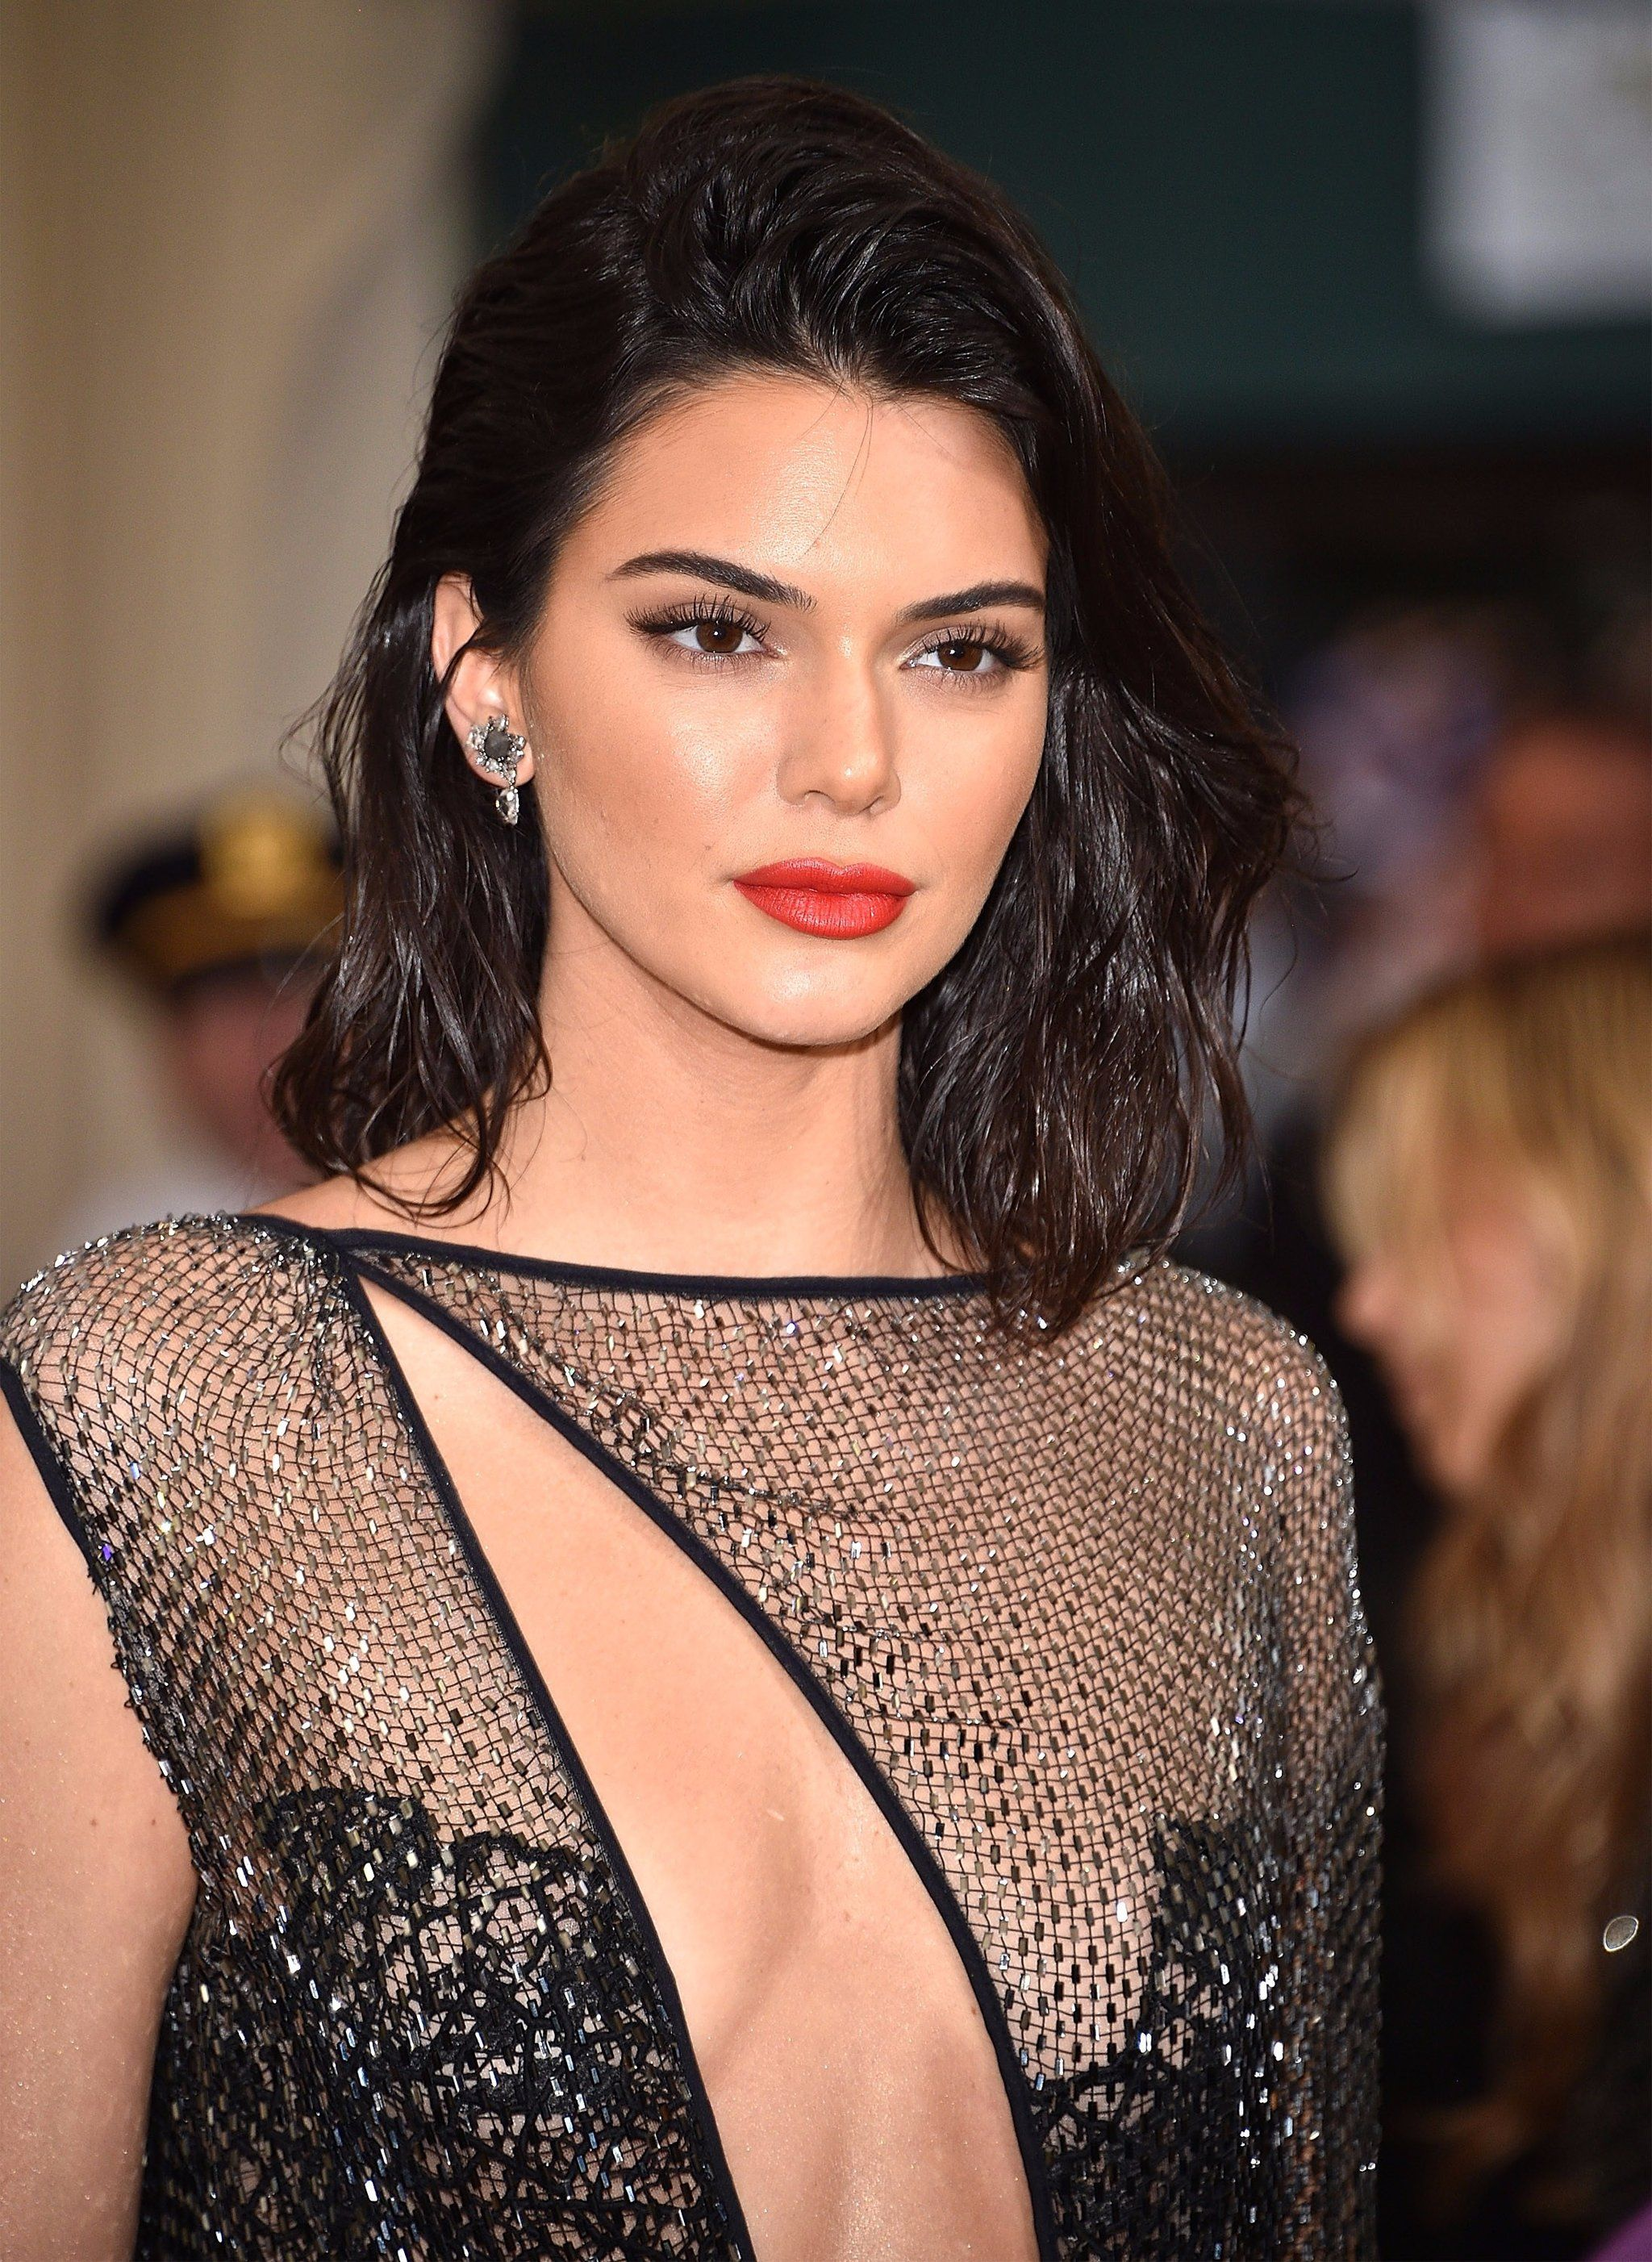 Braless Pics of Kendall Jenner. 2018-2019 celebrityes photos leaks! nude (13 pics)